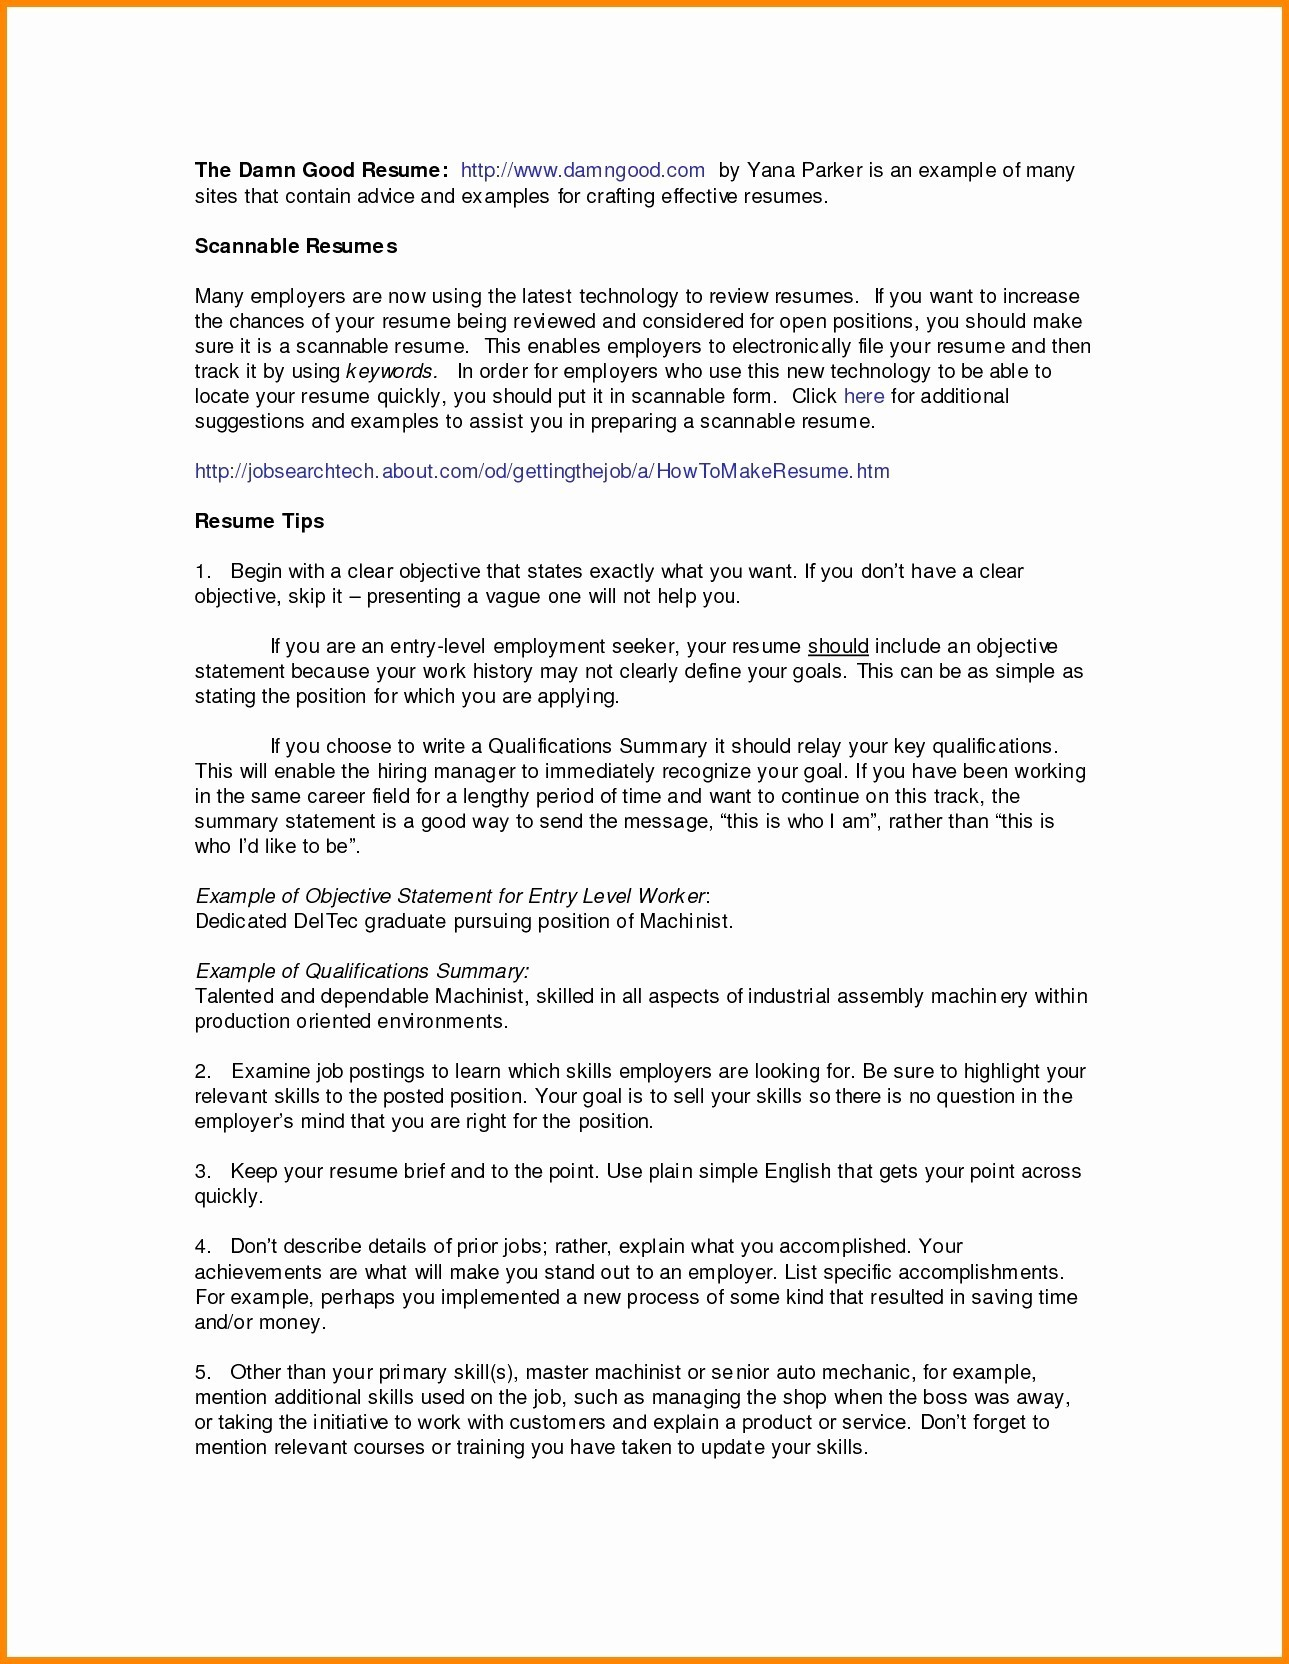 medical office manager resume examples Collection-Medical fice Manager Resume Samples Valid 19 Medical Fice Manager Resume 12-m